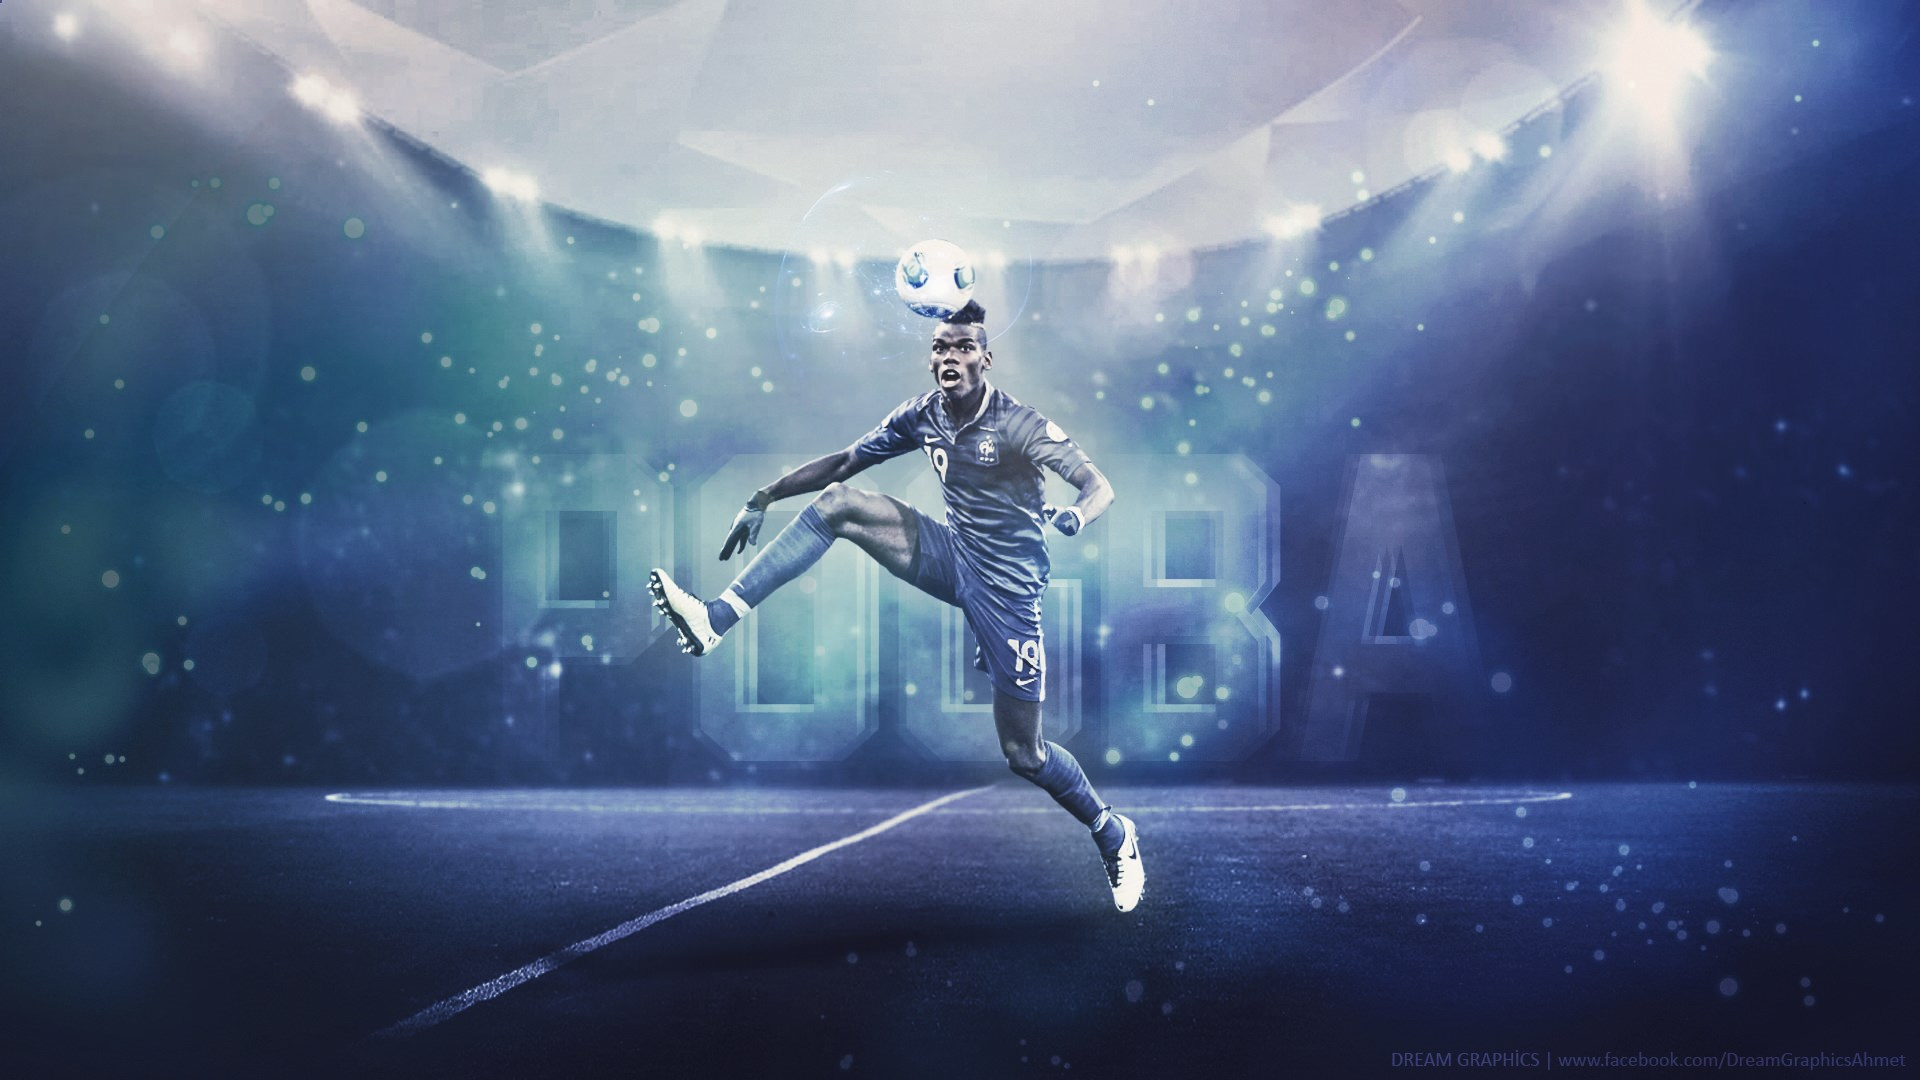 Paul-Pogba-Juventus-Football-HD-jpeg-1920%C3%971080-wallpaper-wpc5807973